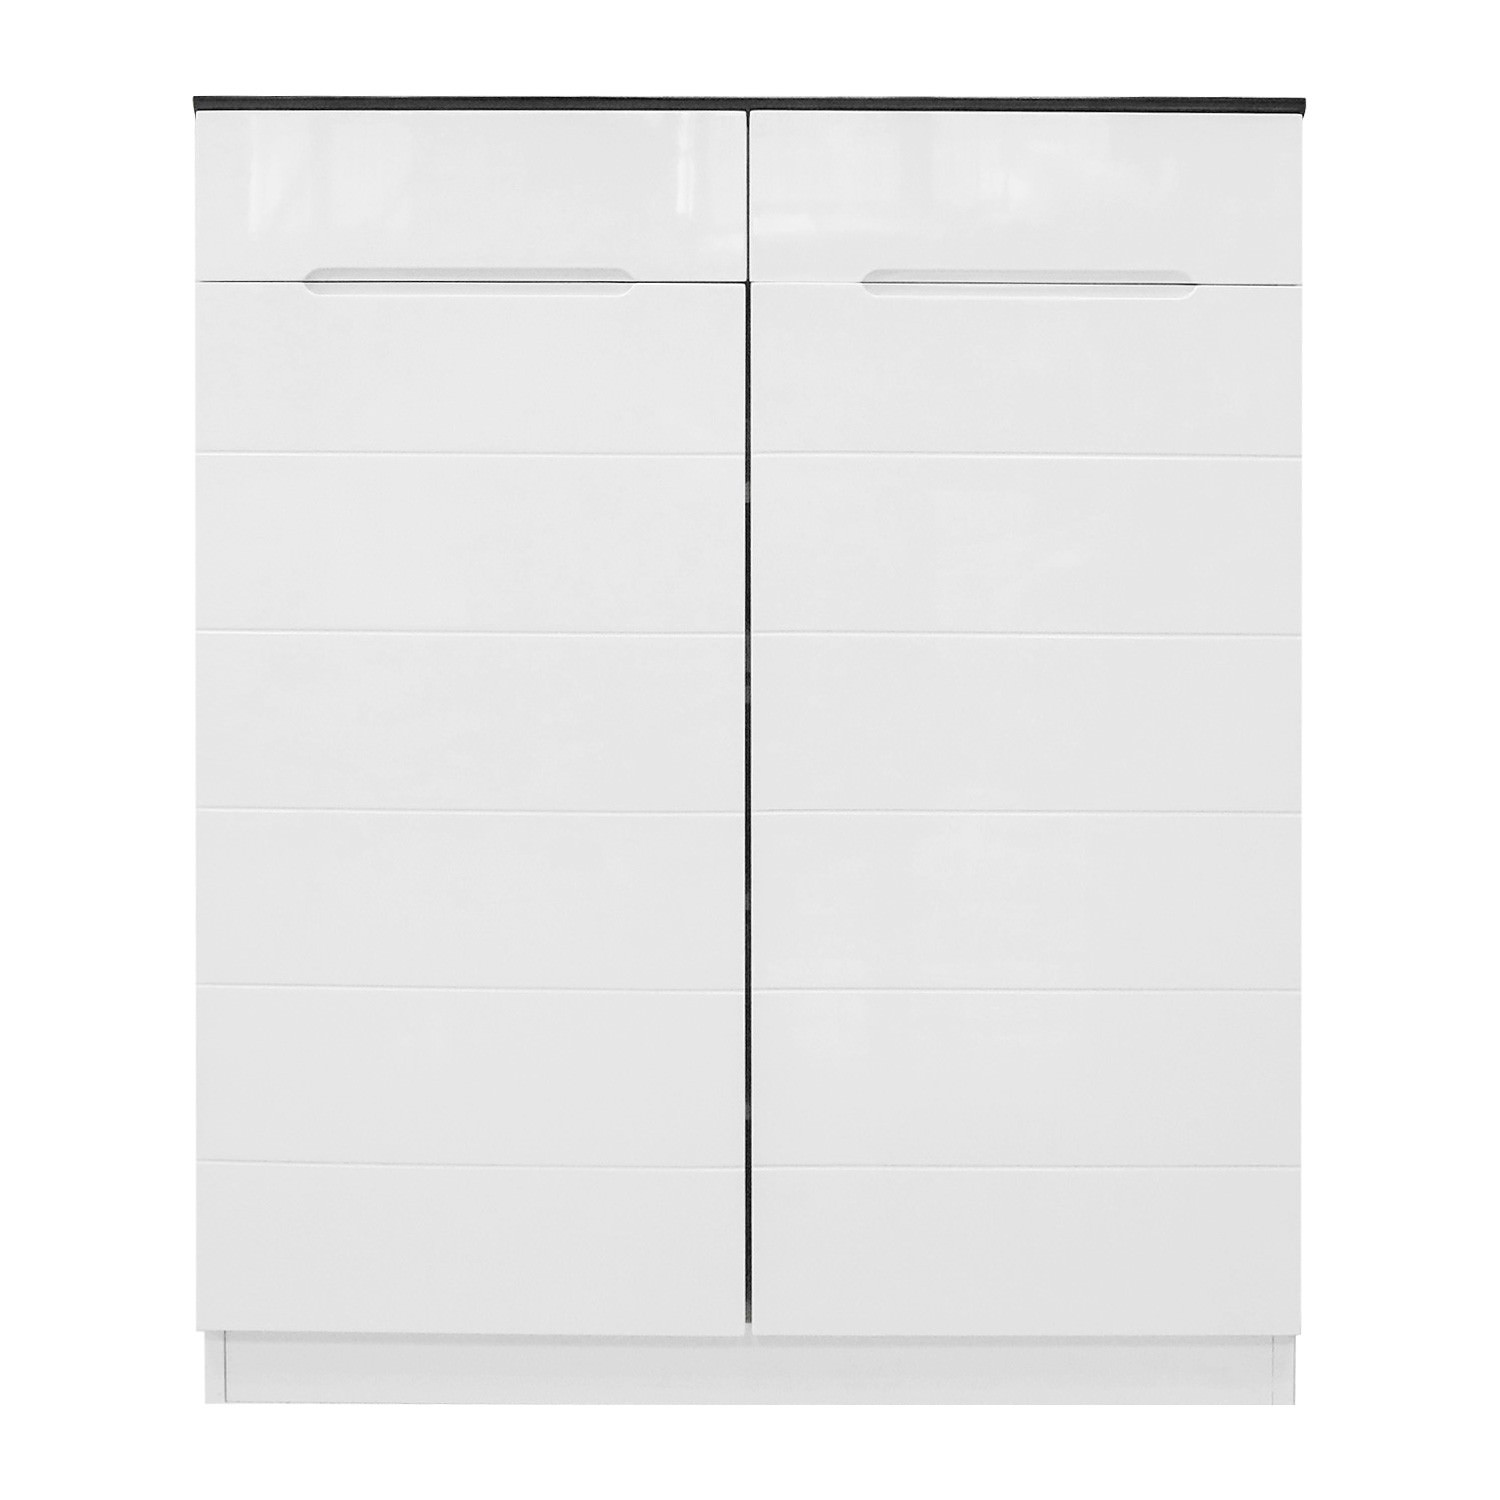 2-Door and 2-Drawer White Shoe Cabinet - 80x101x31.6cm